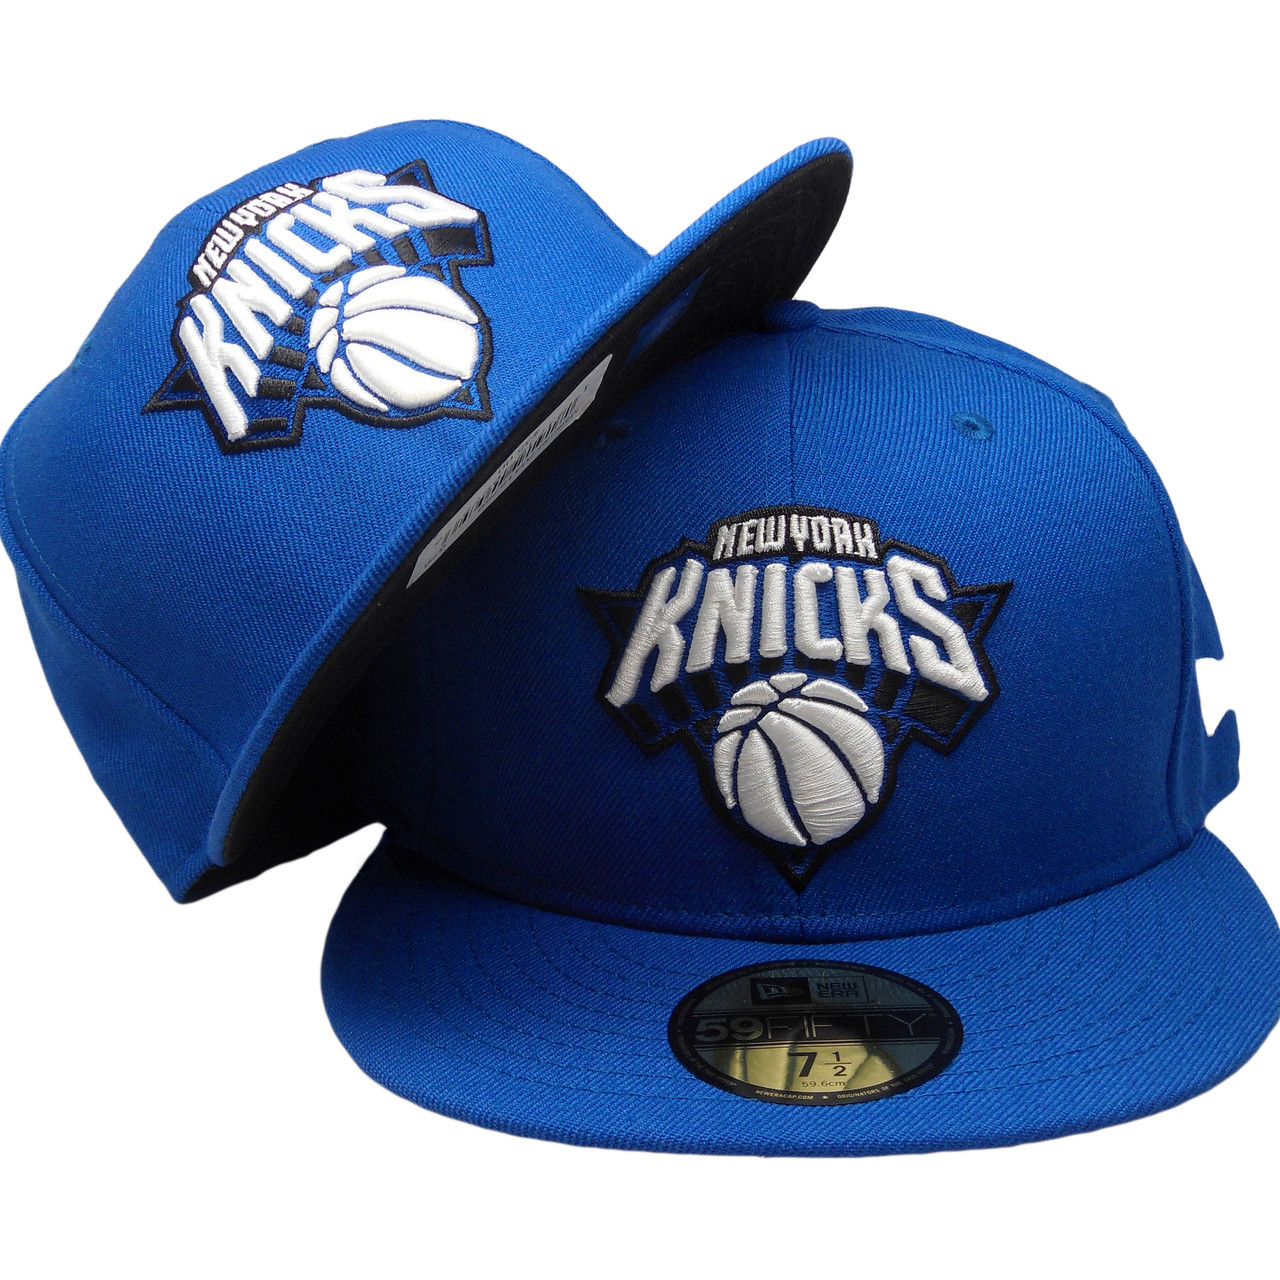 a6ae9b2bcab04 New York Knicks New Era Custom 59Fifty Fitted - Royal, White, Black -  ECapsUnlimited.com